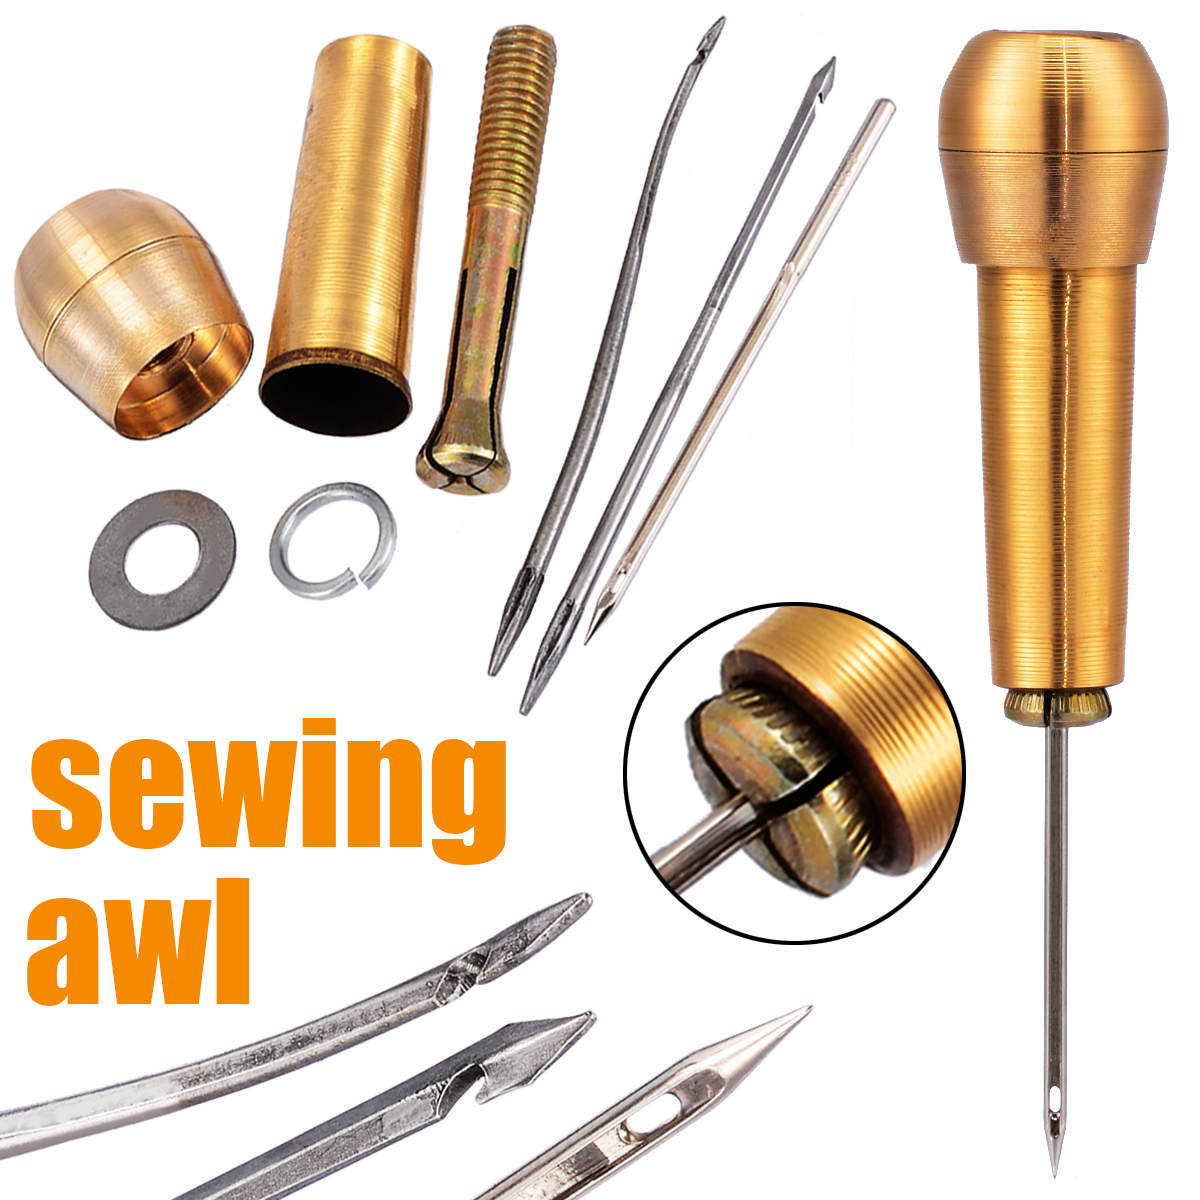 3 Needle Copper Handle Sewing Awl Leather Hand Stitcher Shoe Repair Tool Set